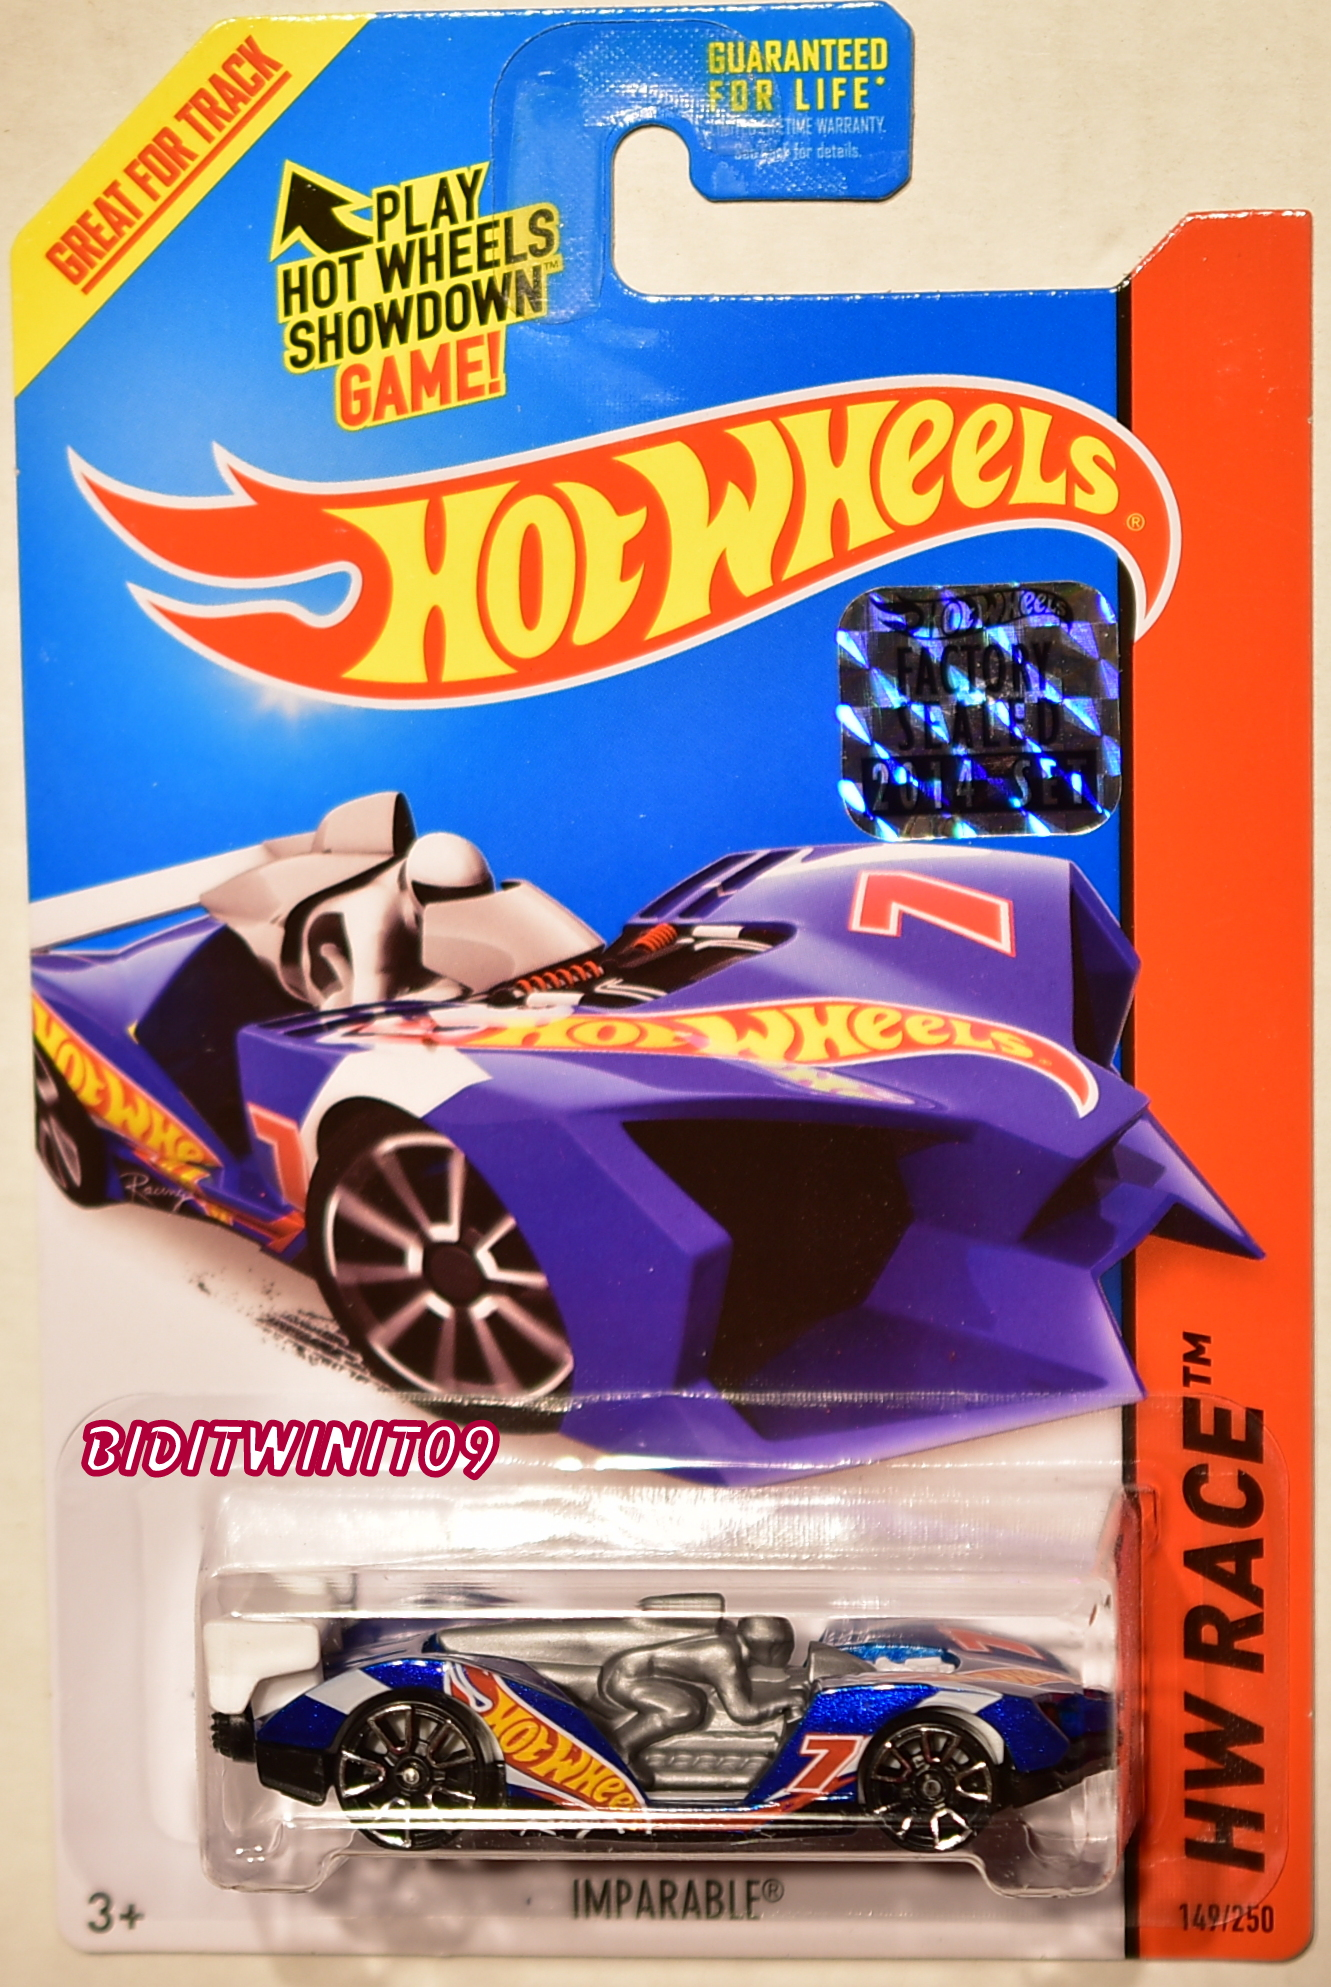 HOT WHEELS 2014 HW RACE IMPARABLE FACTORY SEALED